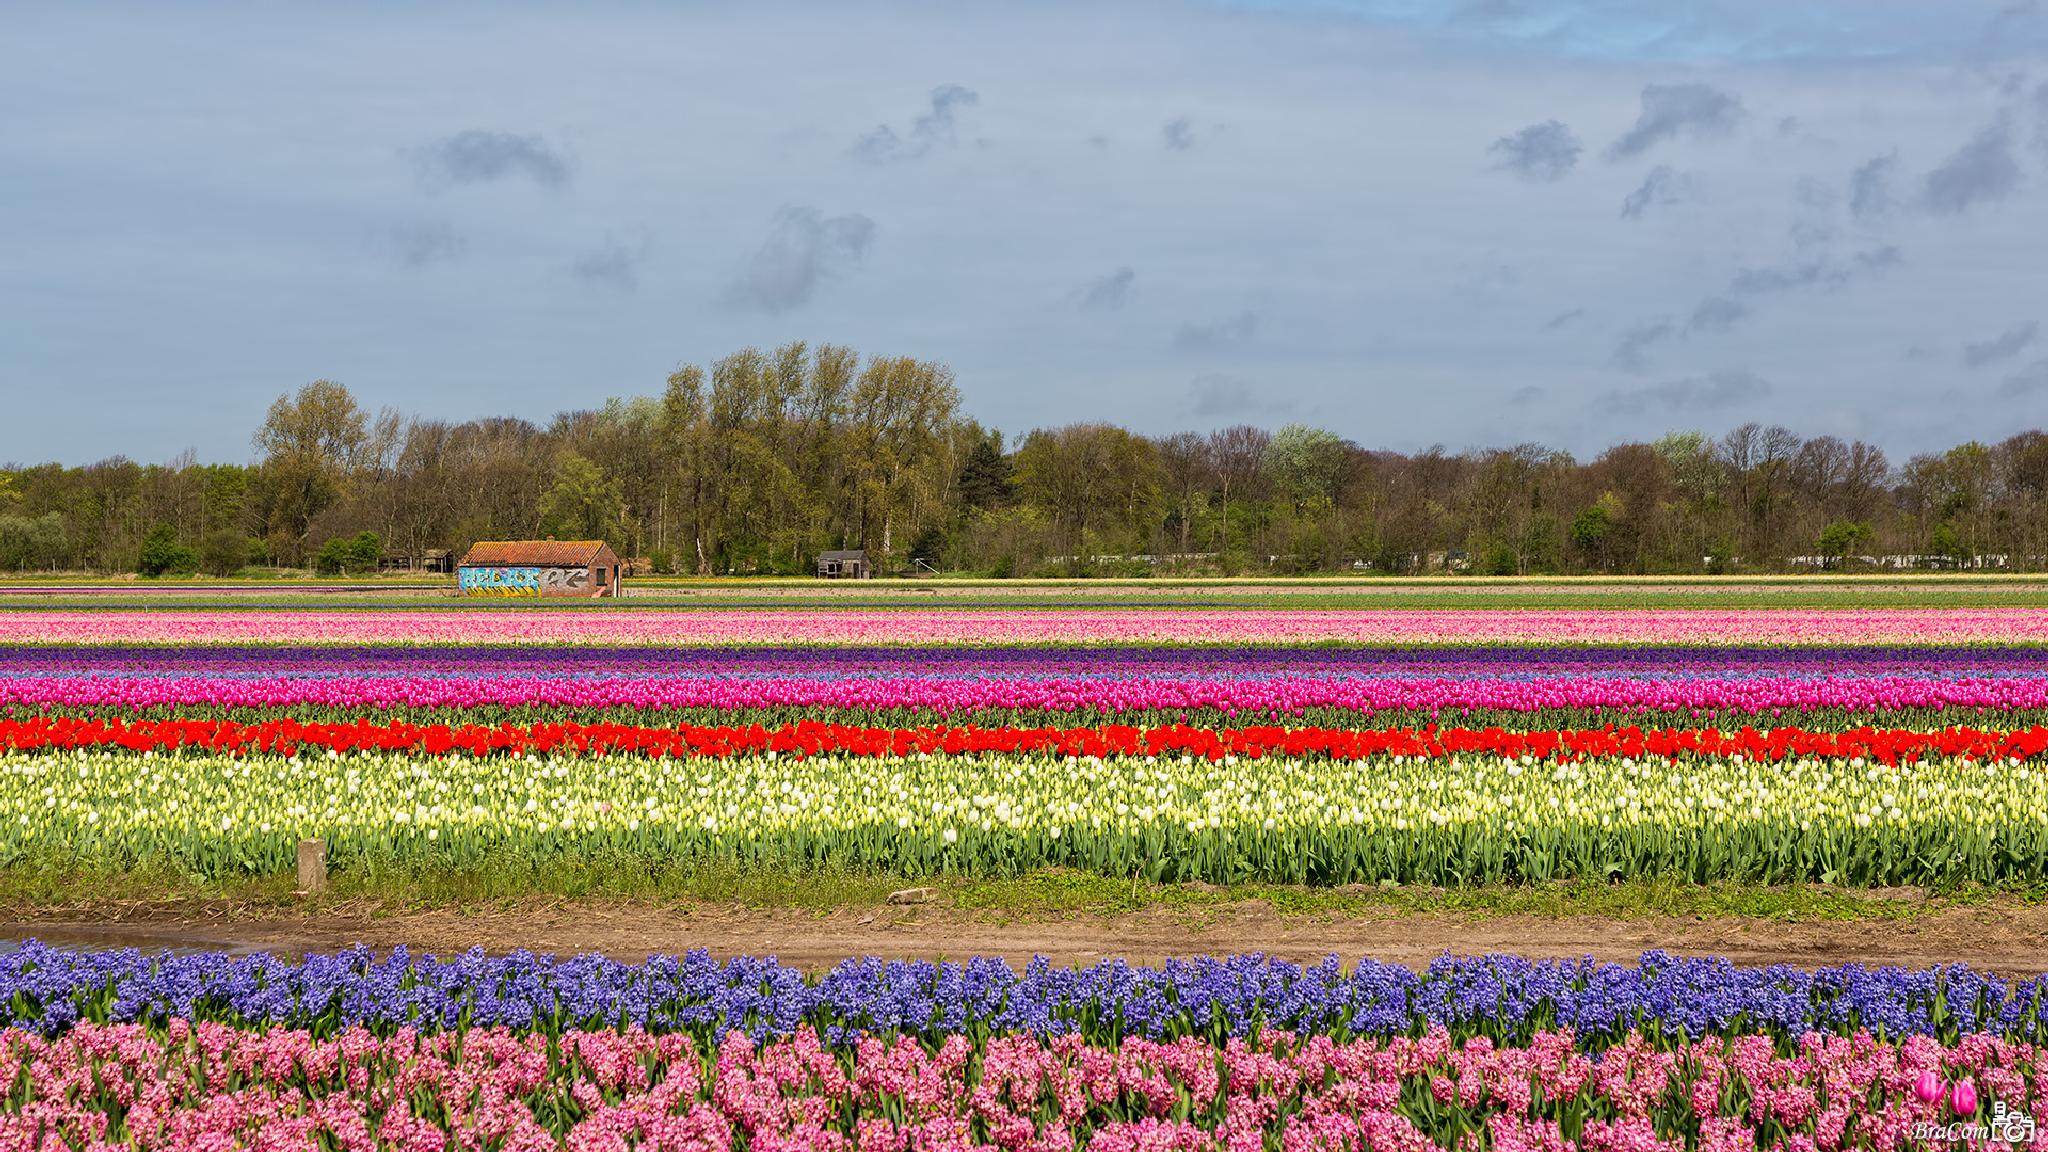 The colors of spring by Bram van Broekhoven